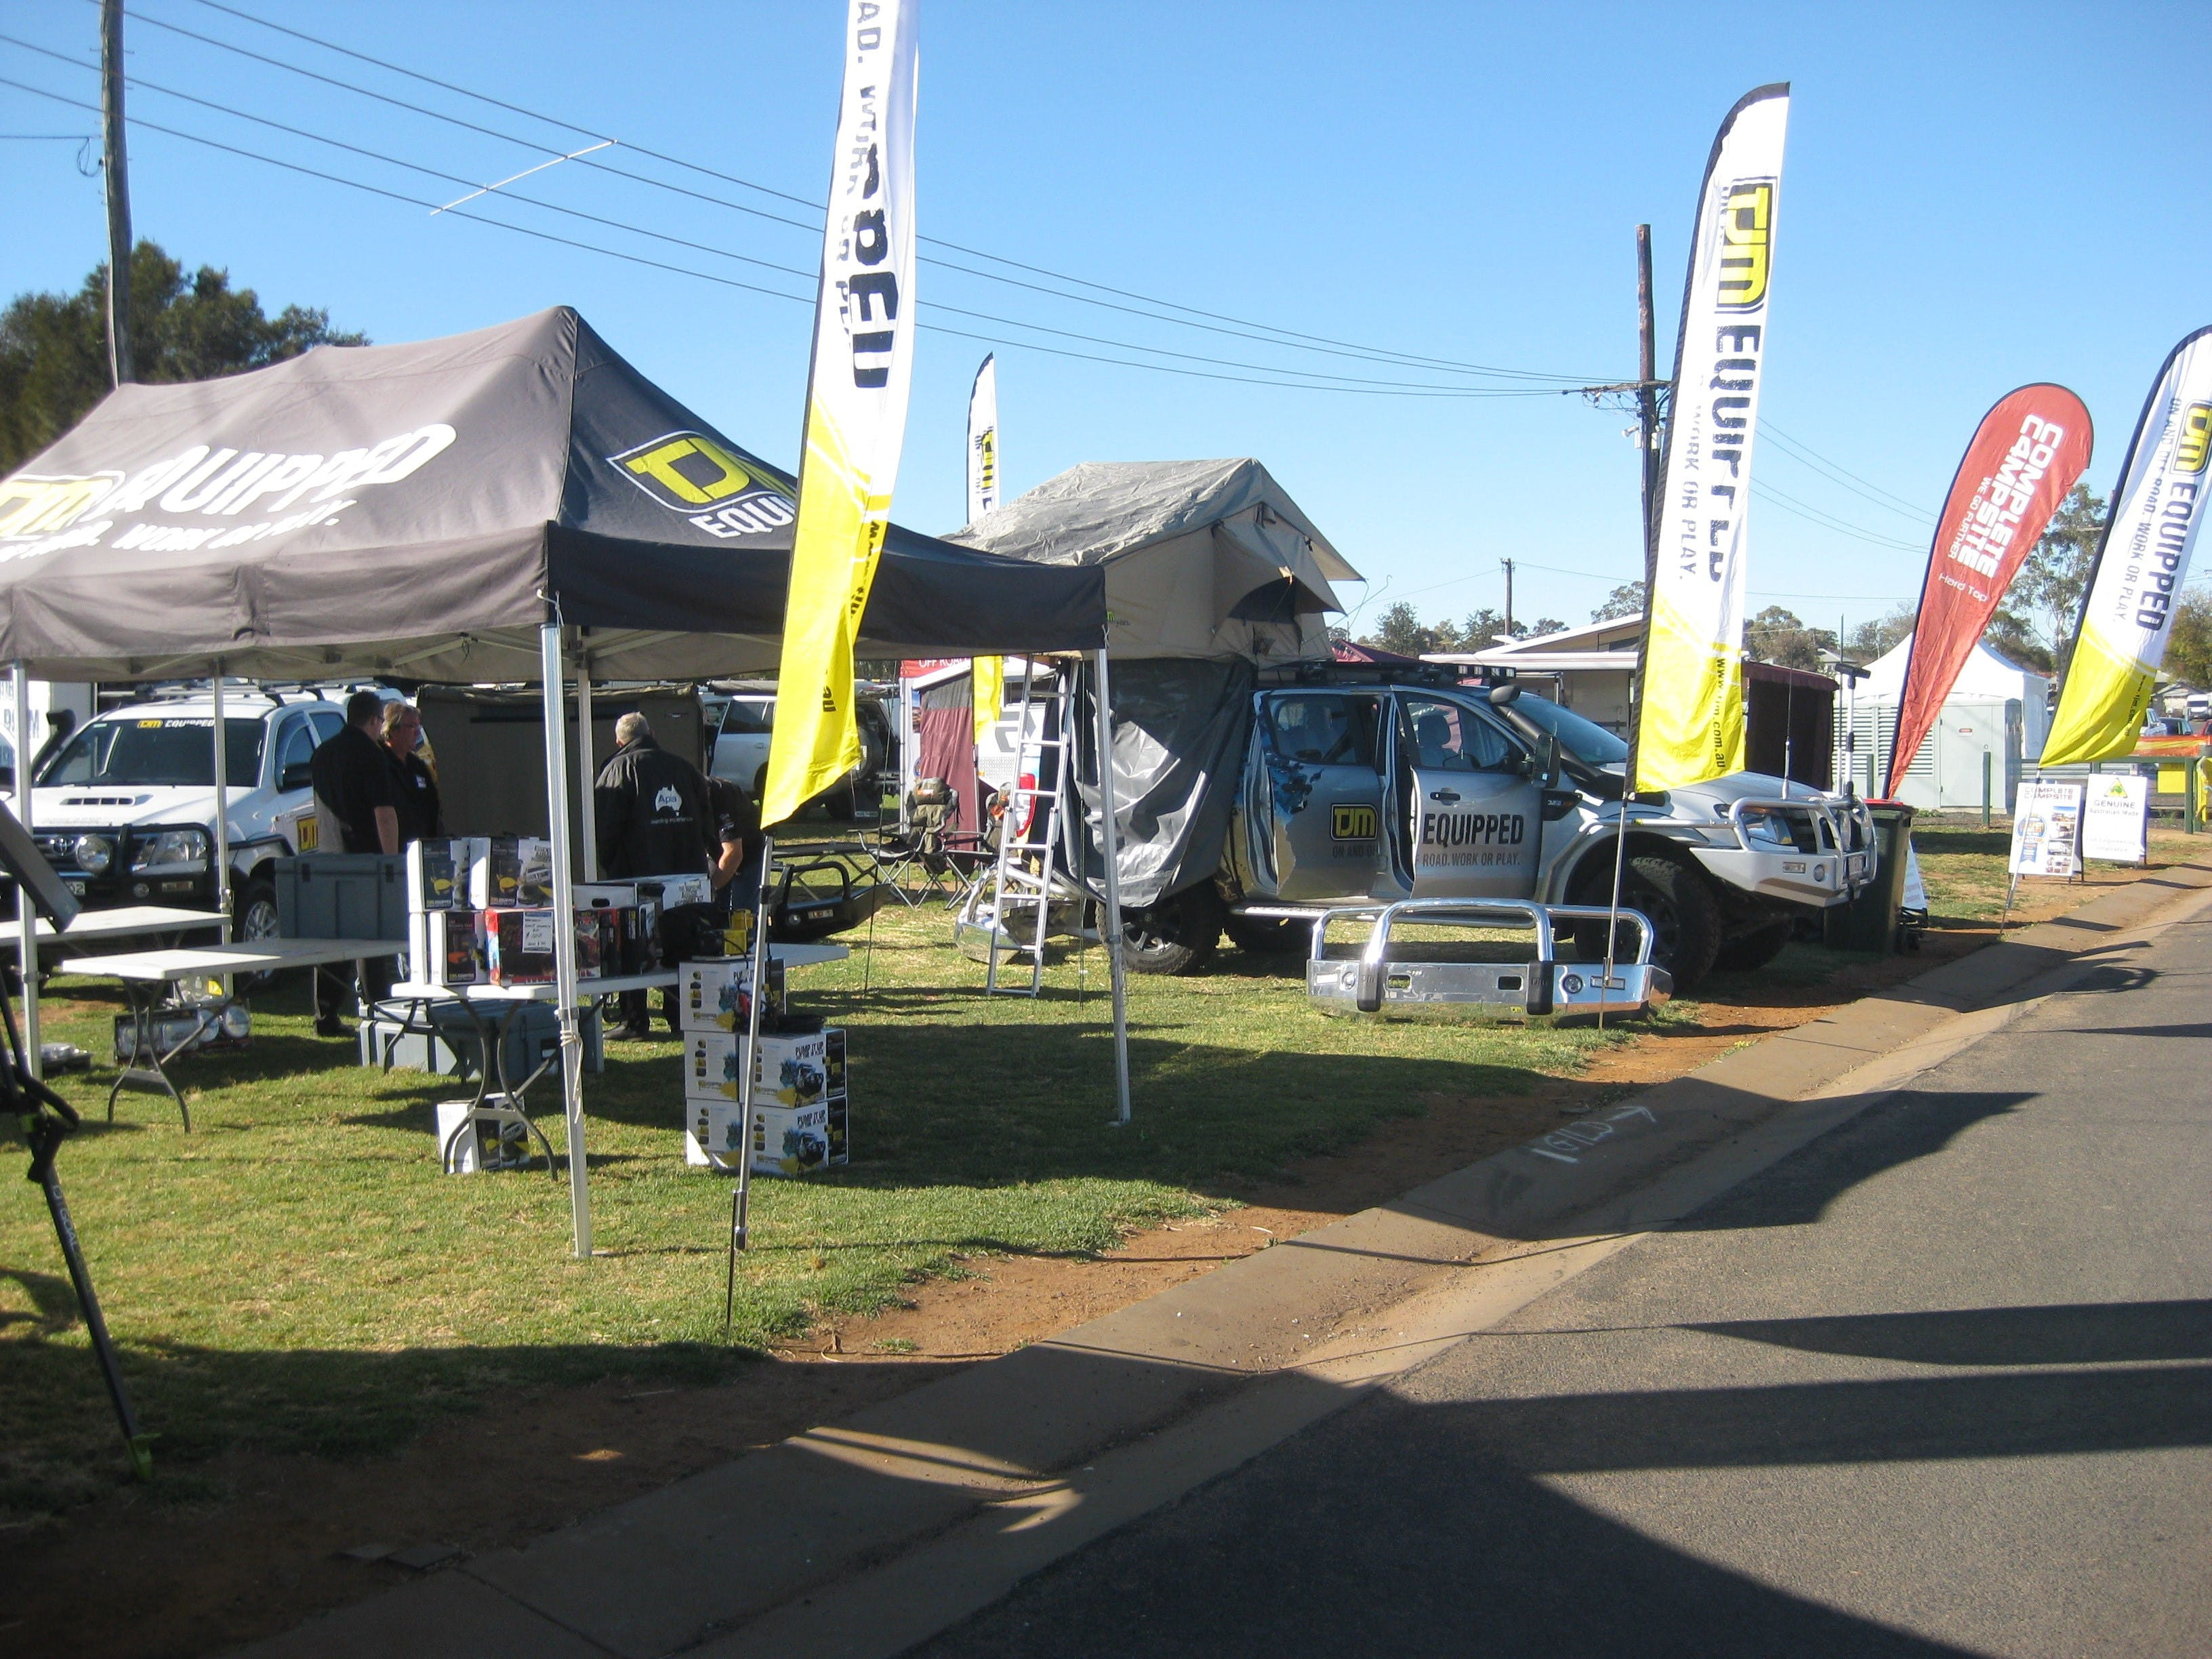 Orana Caravan Camping 4WD Fish and Boat Show - Accommodation Search